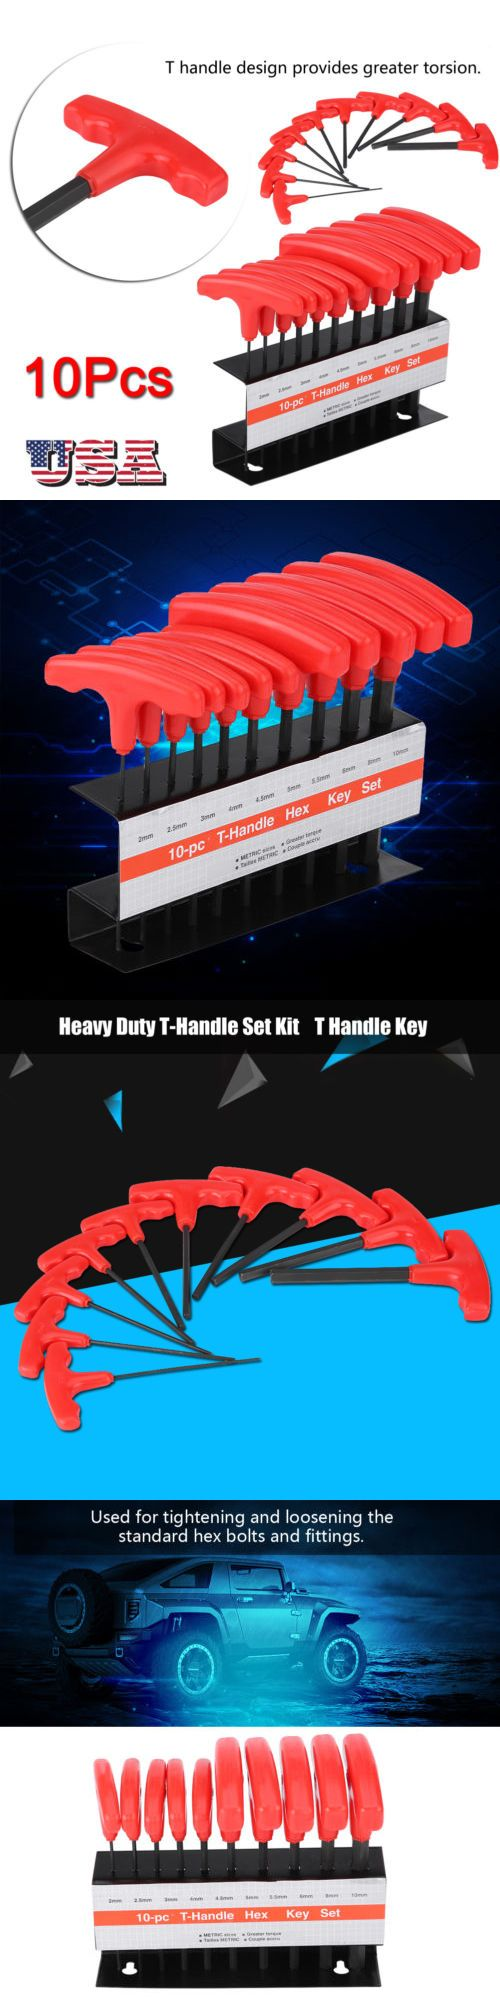 Hex Keys And Wrenches 42258 10 Pc T Handle Type Hex Key Wrench Set Metric Sizes Allen Wrench Mm Set Buy It Now Only 11 89 On Ebay Hex Key Wrench Set Hex